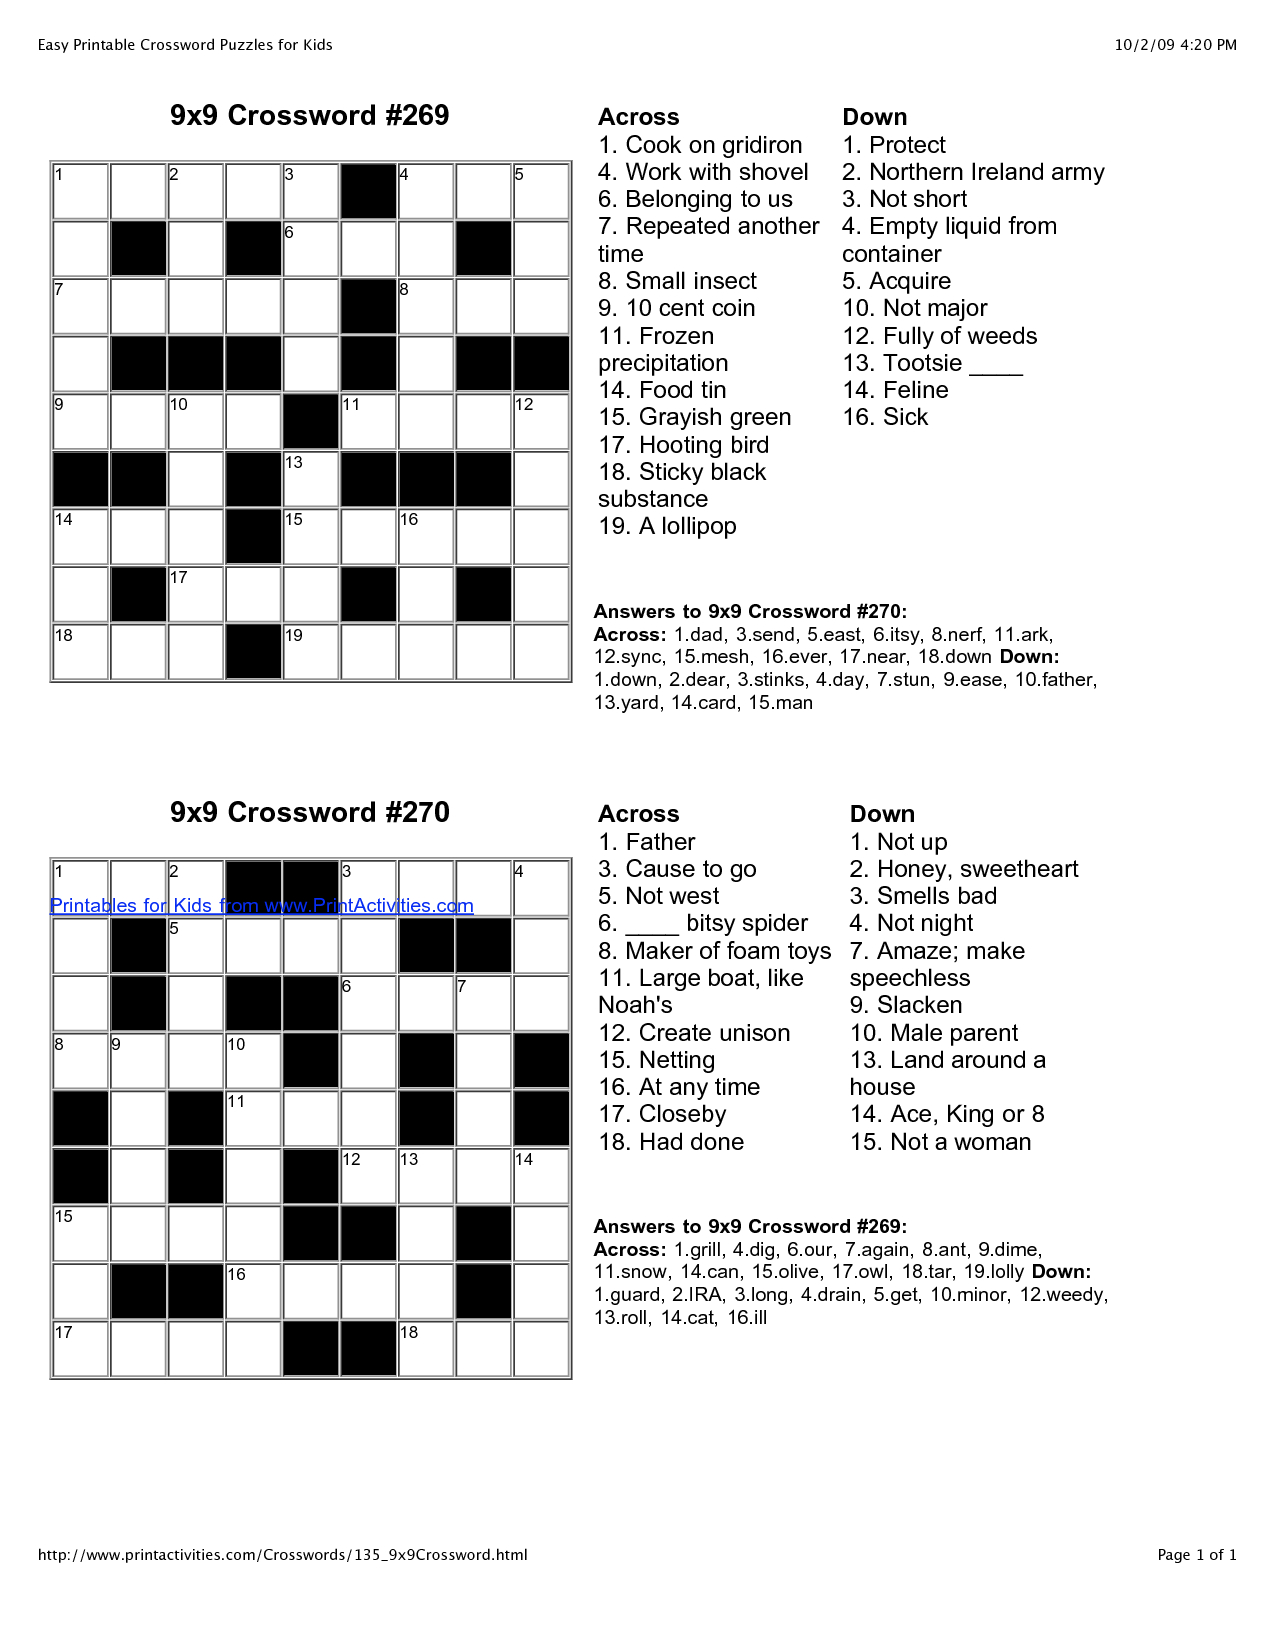 Easy Crossword Puzzles | I'm Going To Be An Slp! | Kids Crossword - Printable Youth Crossword Puzzles